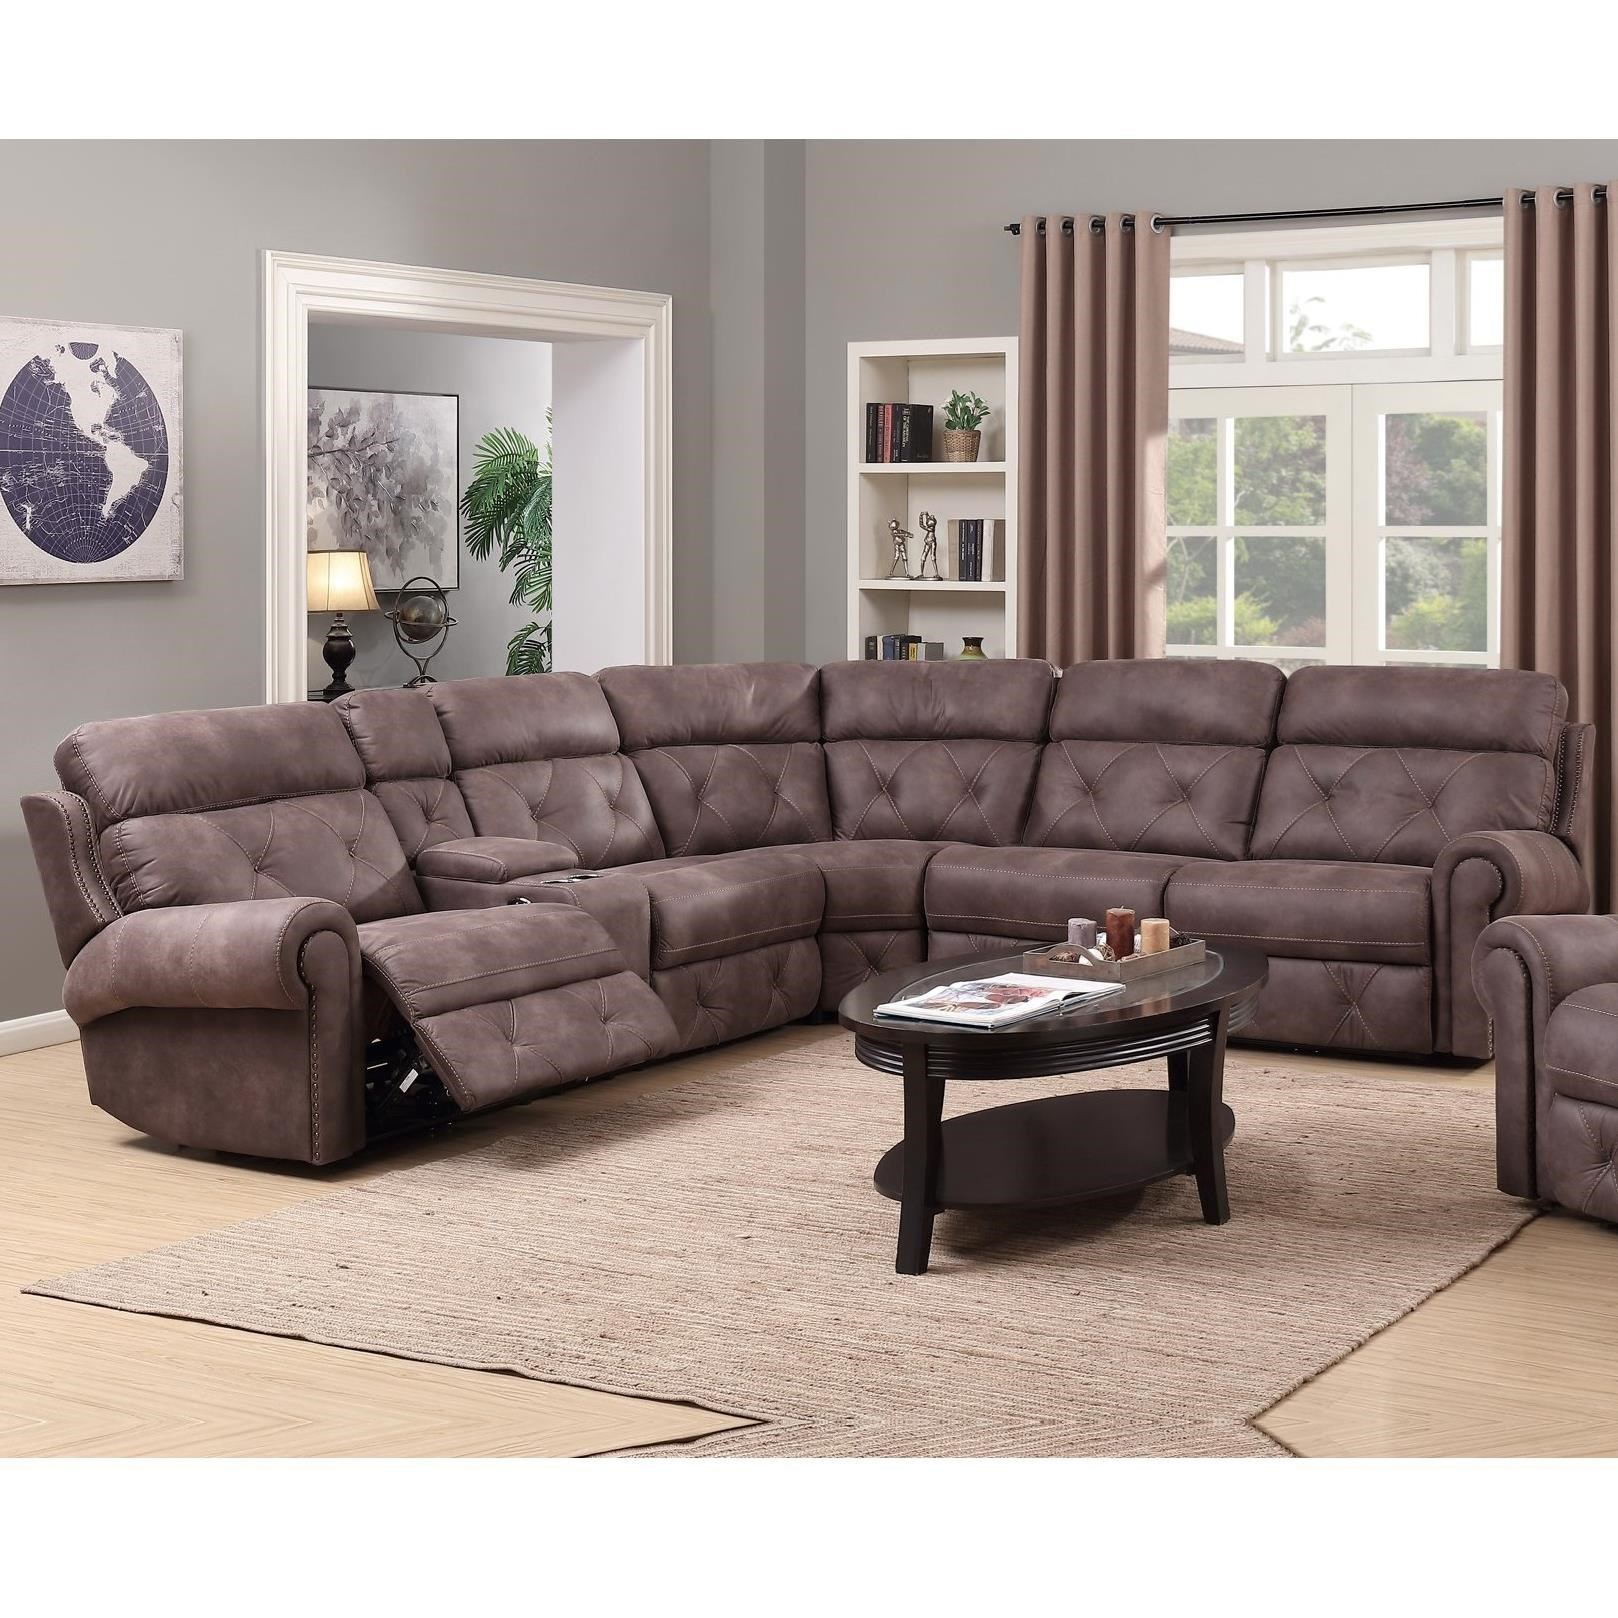 Reclining Sectional Sofa Corner Gray Fabric Recliner Sofa With